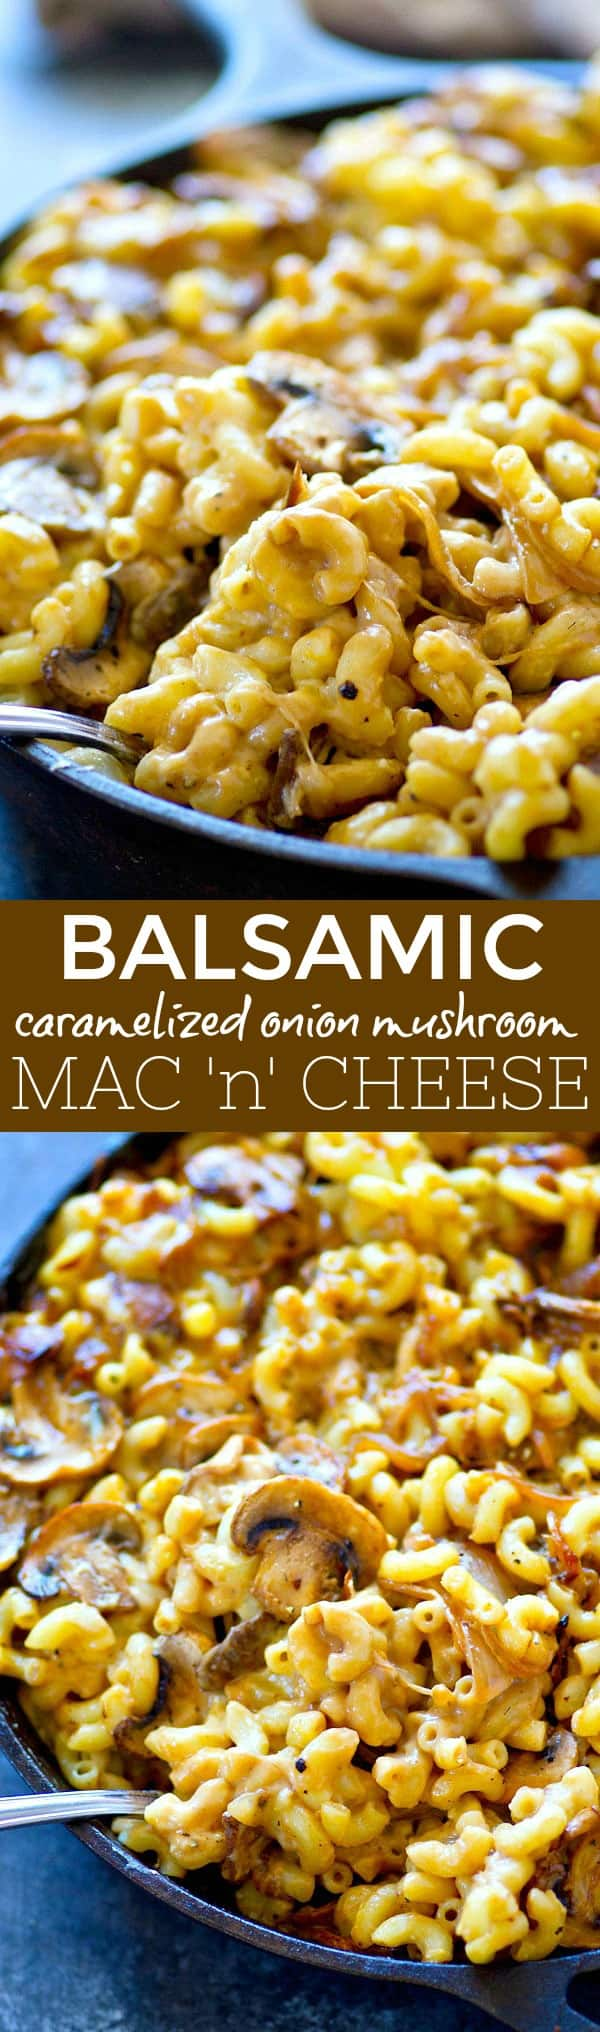 Balsamic caramelized onions and flavorful mushrooms are a winning combo in this creamy, insanely cheesy mac 'n' cheese! Perfect weeknight comfort food.